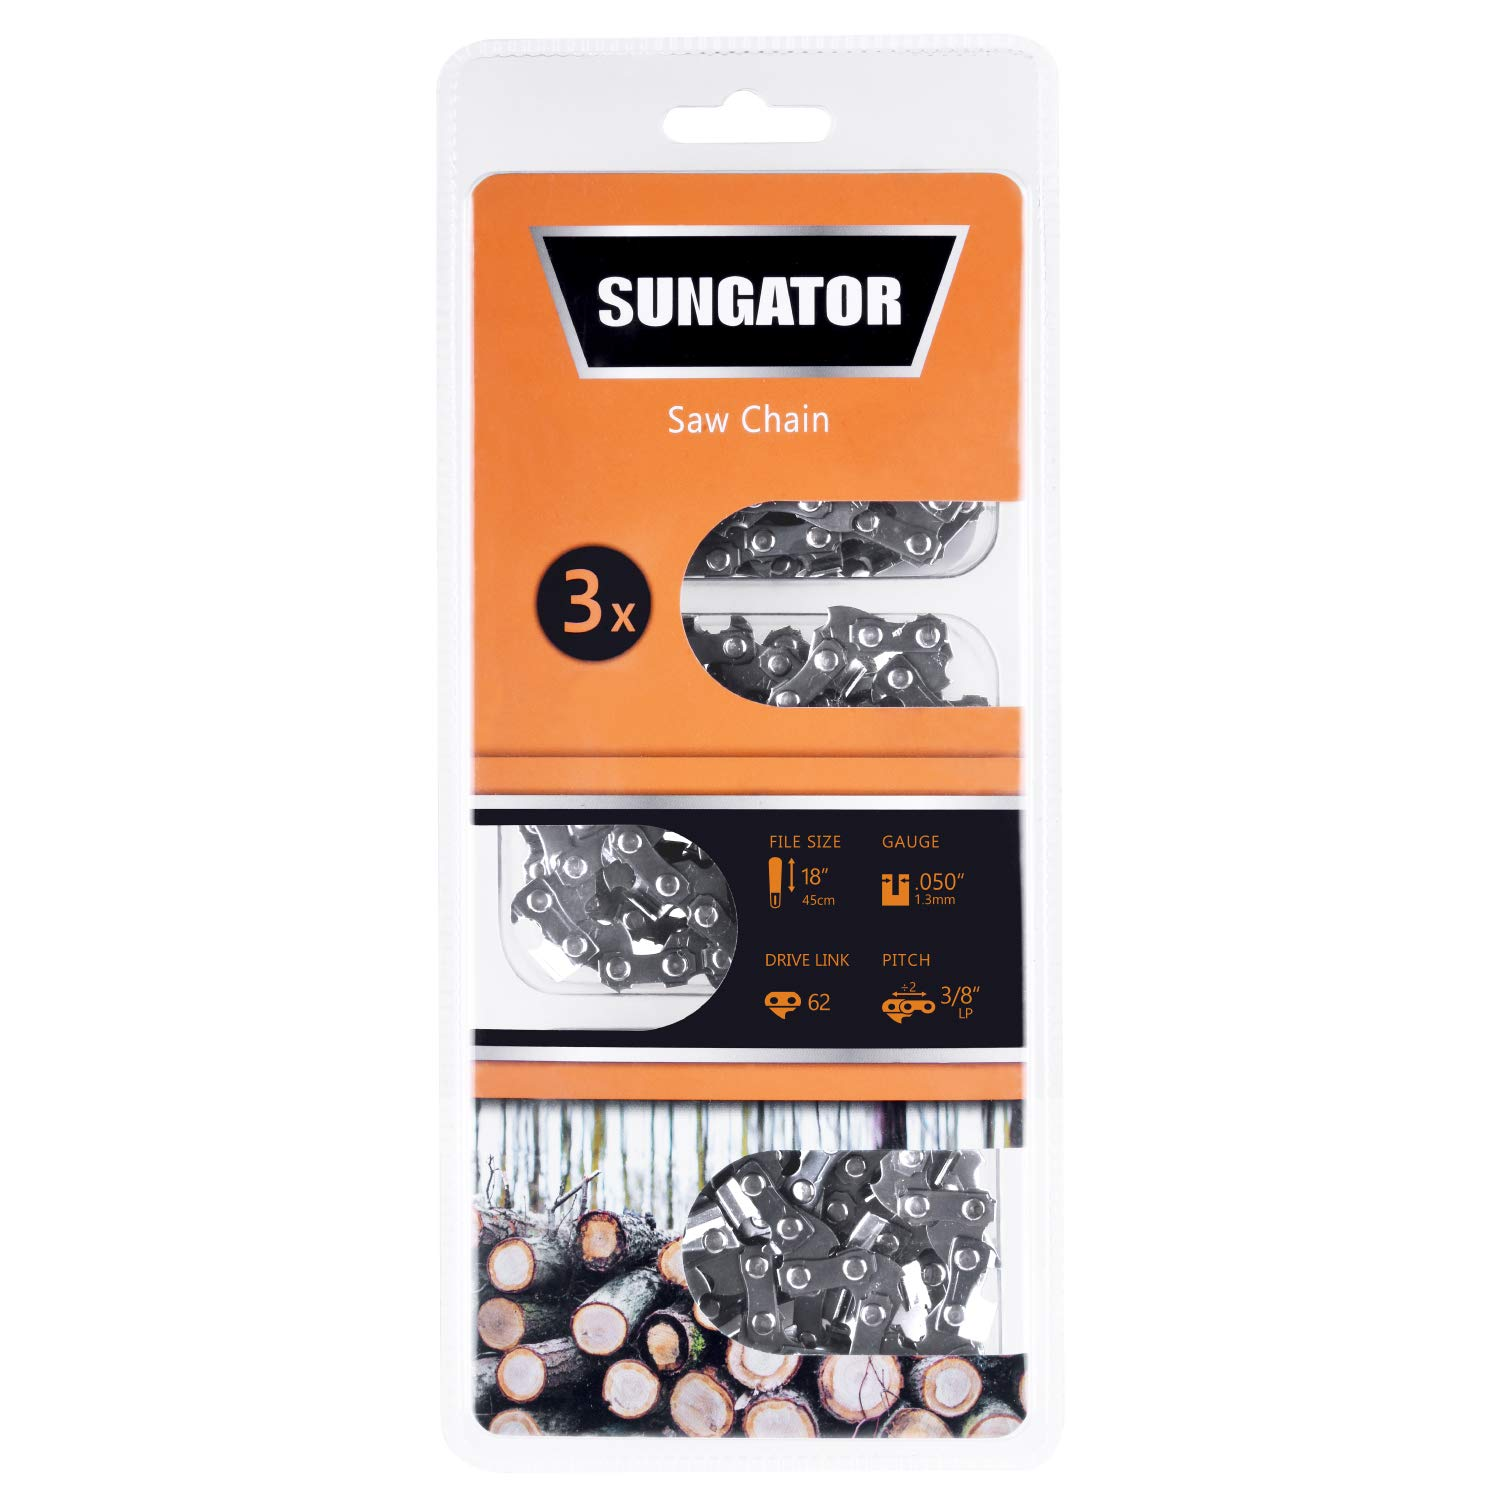 "SUNGATOR Chainsaw Chain, SG-S62 Saw Chain, 18-Inch - .050"" Gauge - 3/8"" LP Pitch - 62 Drive Links Semi-Chisel, Fits Specific Models of Craftsman, Husqvarna, Homelite, Poulan (3-Pack)"